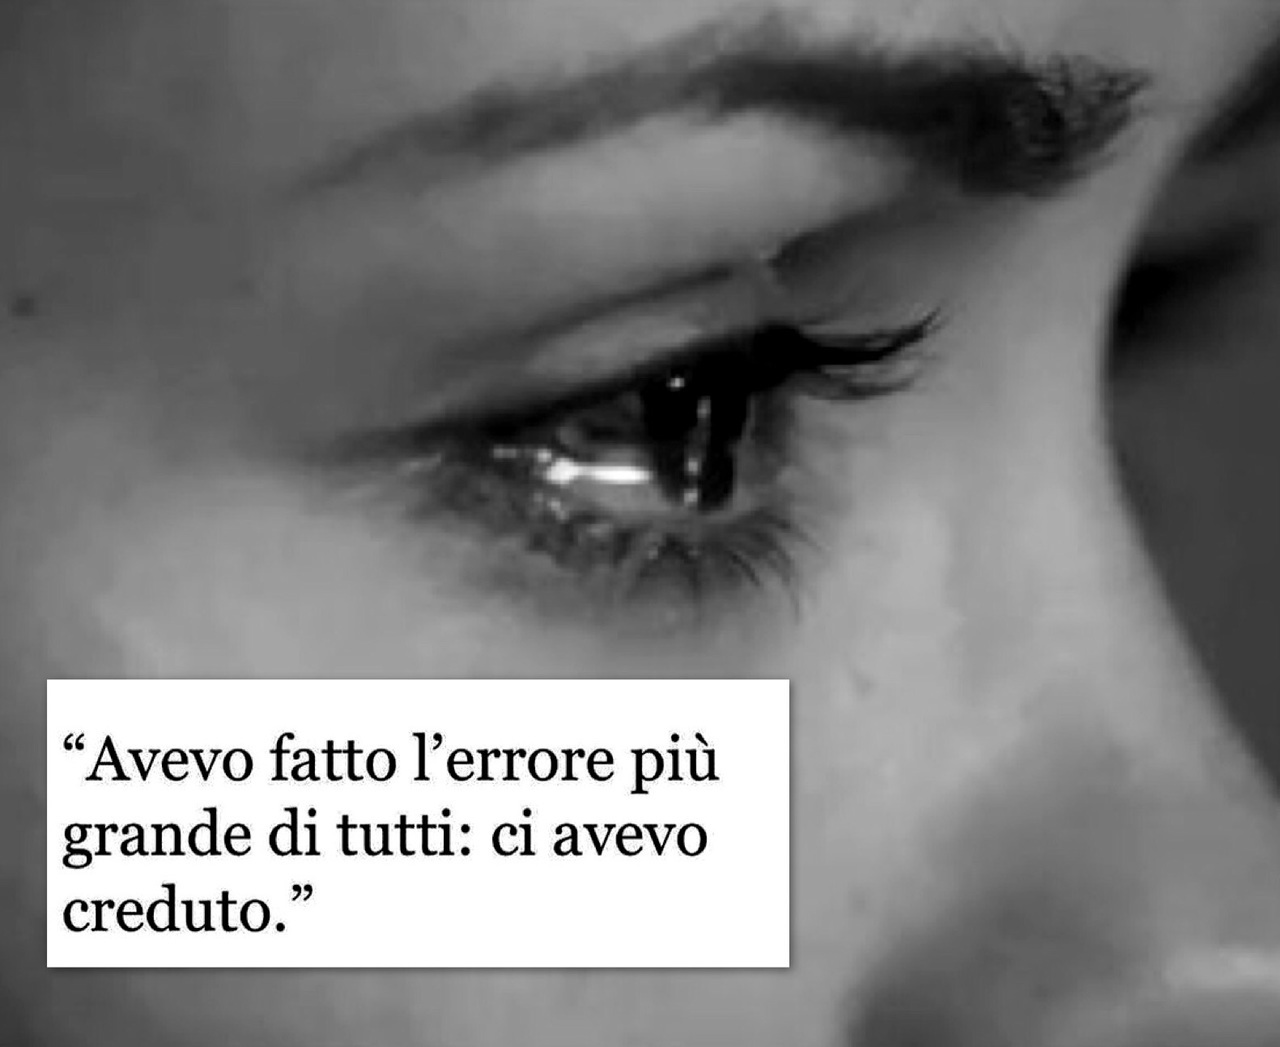 Image About Bianco E Nero In Frasi By Ale On We Heart It